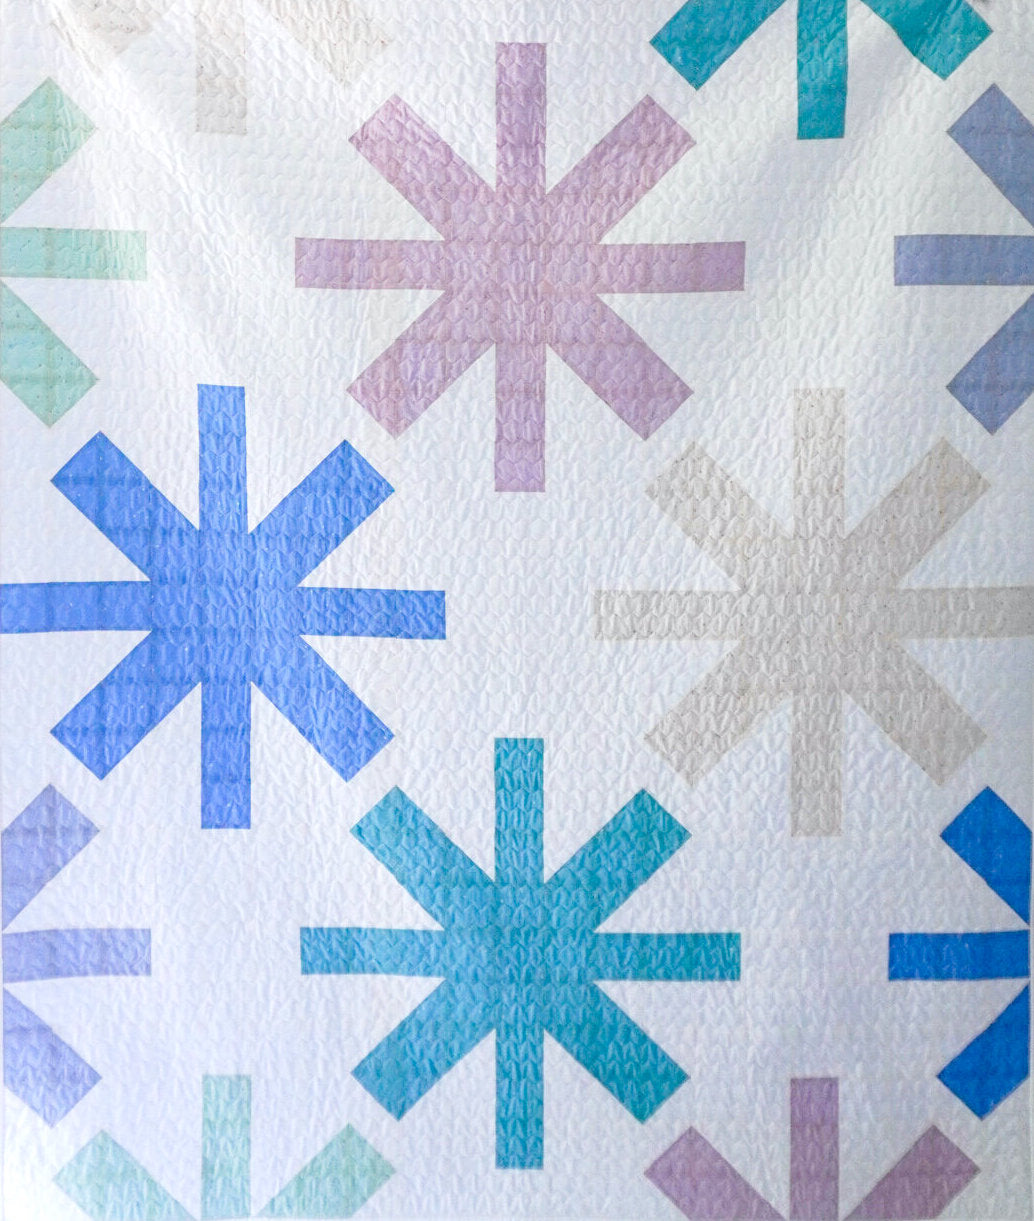 Asterisks Quilt Pattern by Modern Handcraft - Sewfinity.com